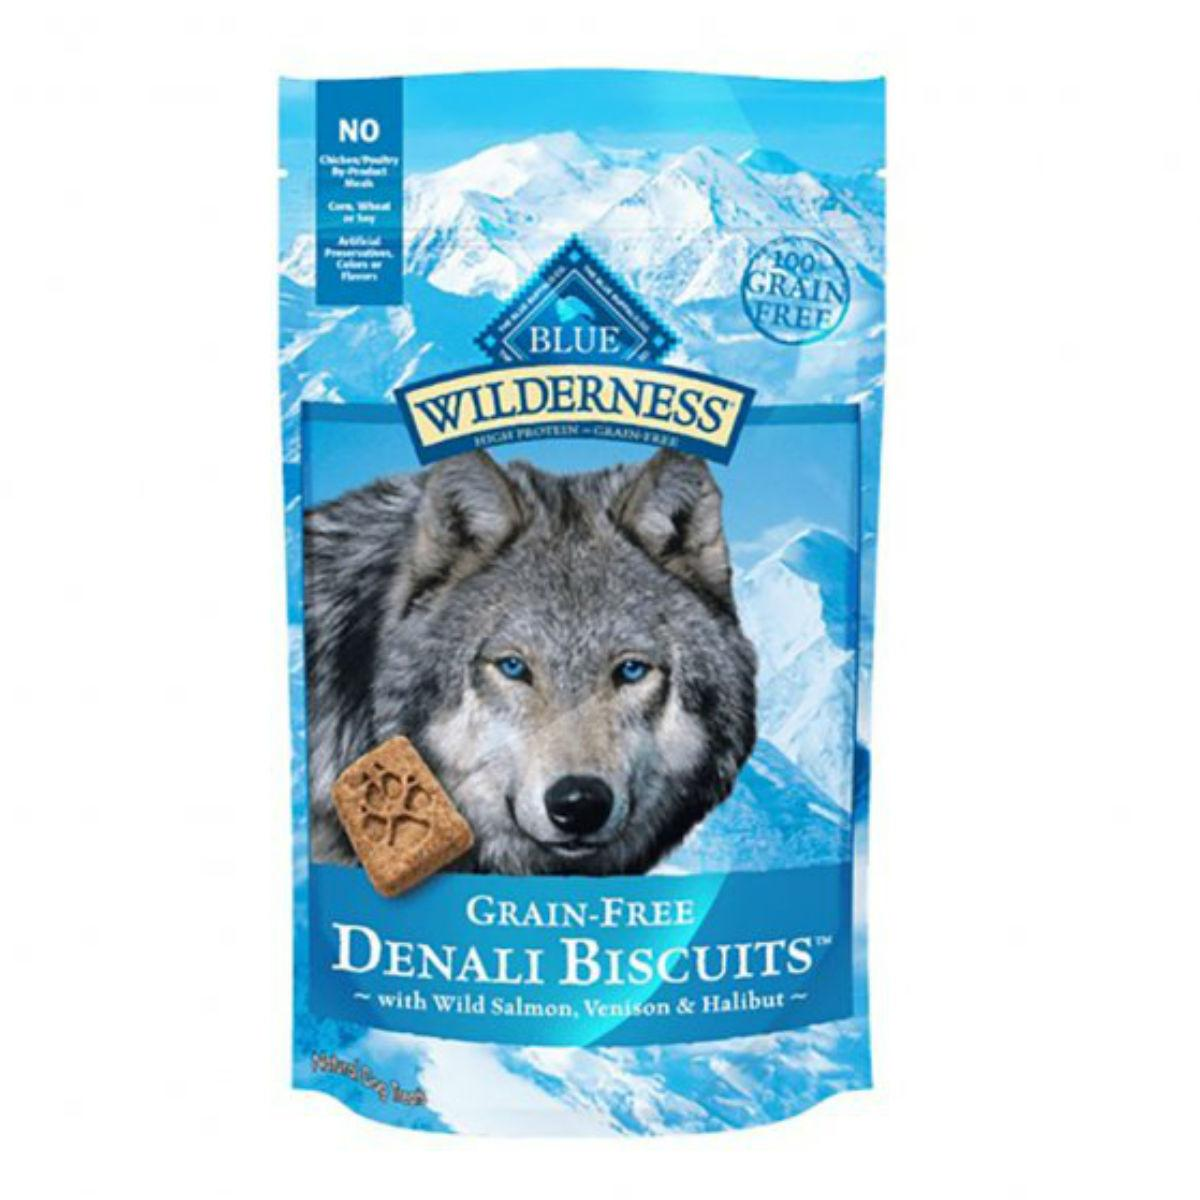 Blue Buffalo Wilderness Denali Biscuits Dog Treats - Wild Salmon, Venison & Halibut